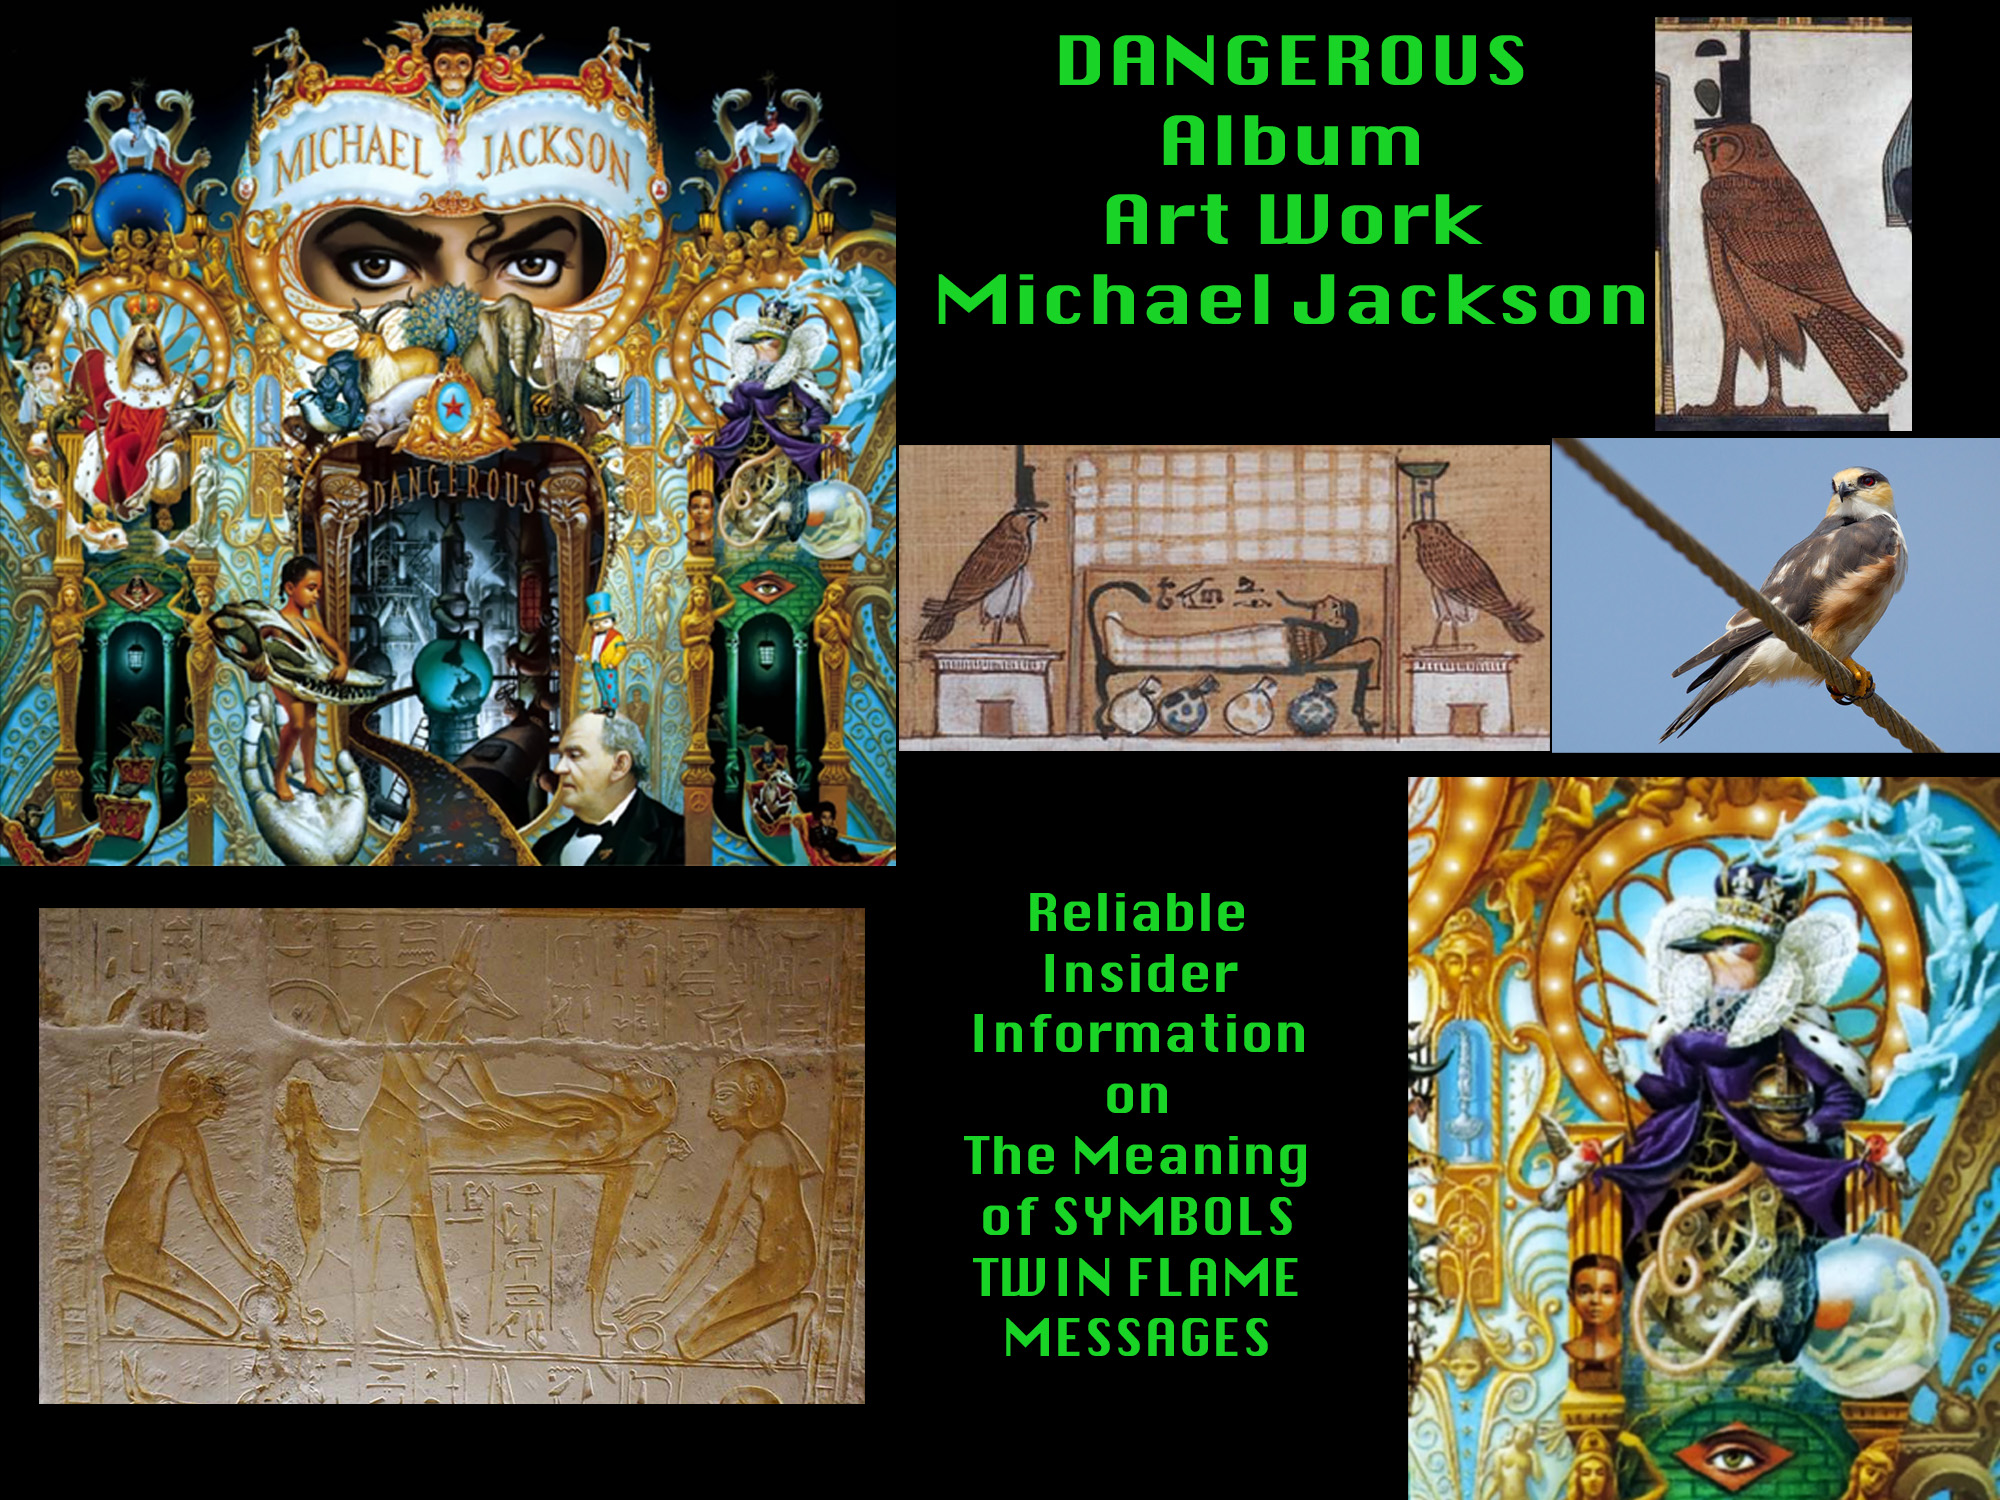 Michael jackson dangerous album special series about ancient michael jackson dangerous album art meaning dog bird osiris isis anubis susan elsa twin biocorpaavc Gallery